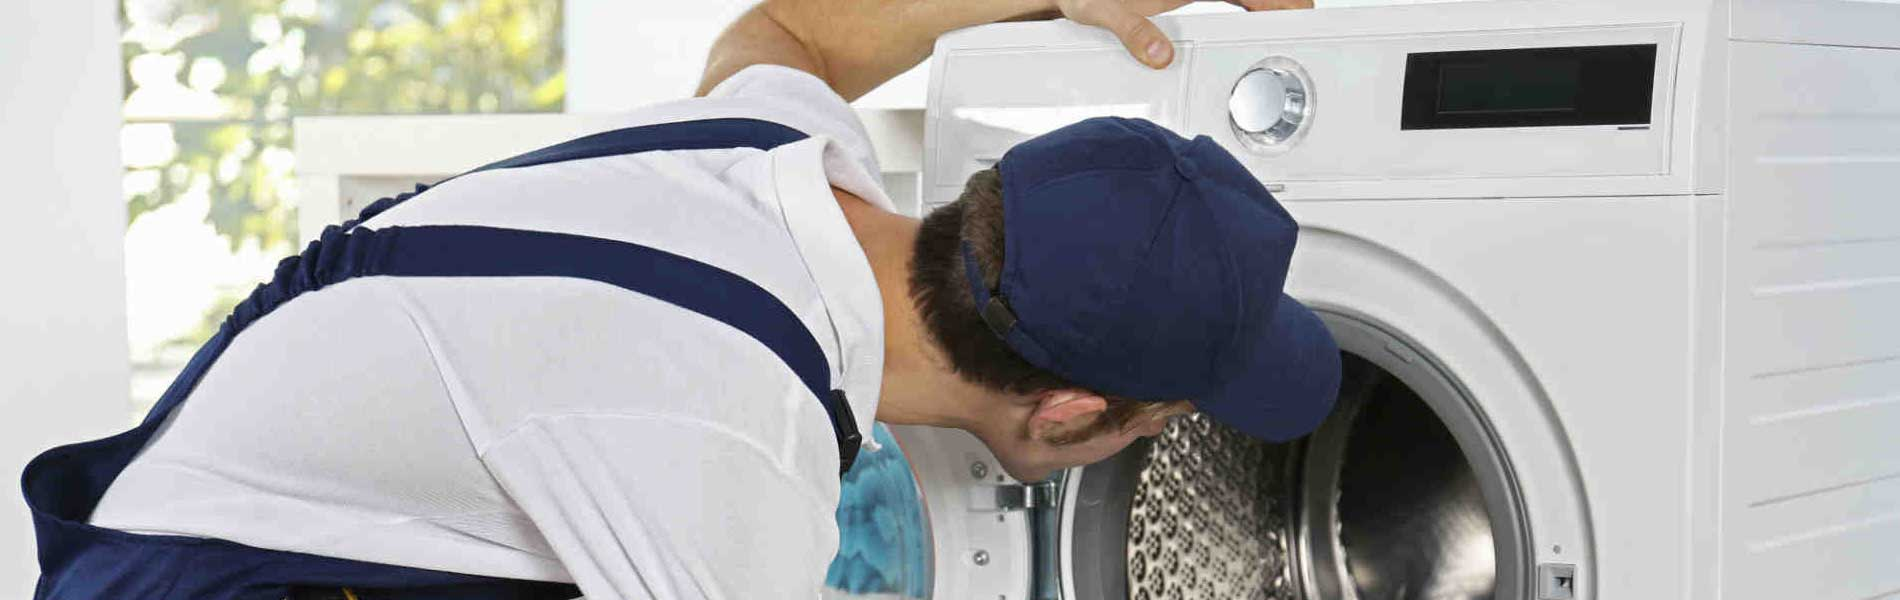 Onida Washing Machine Service in R.A Puram